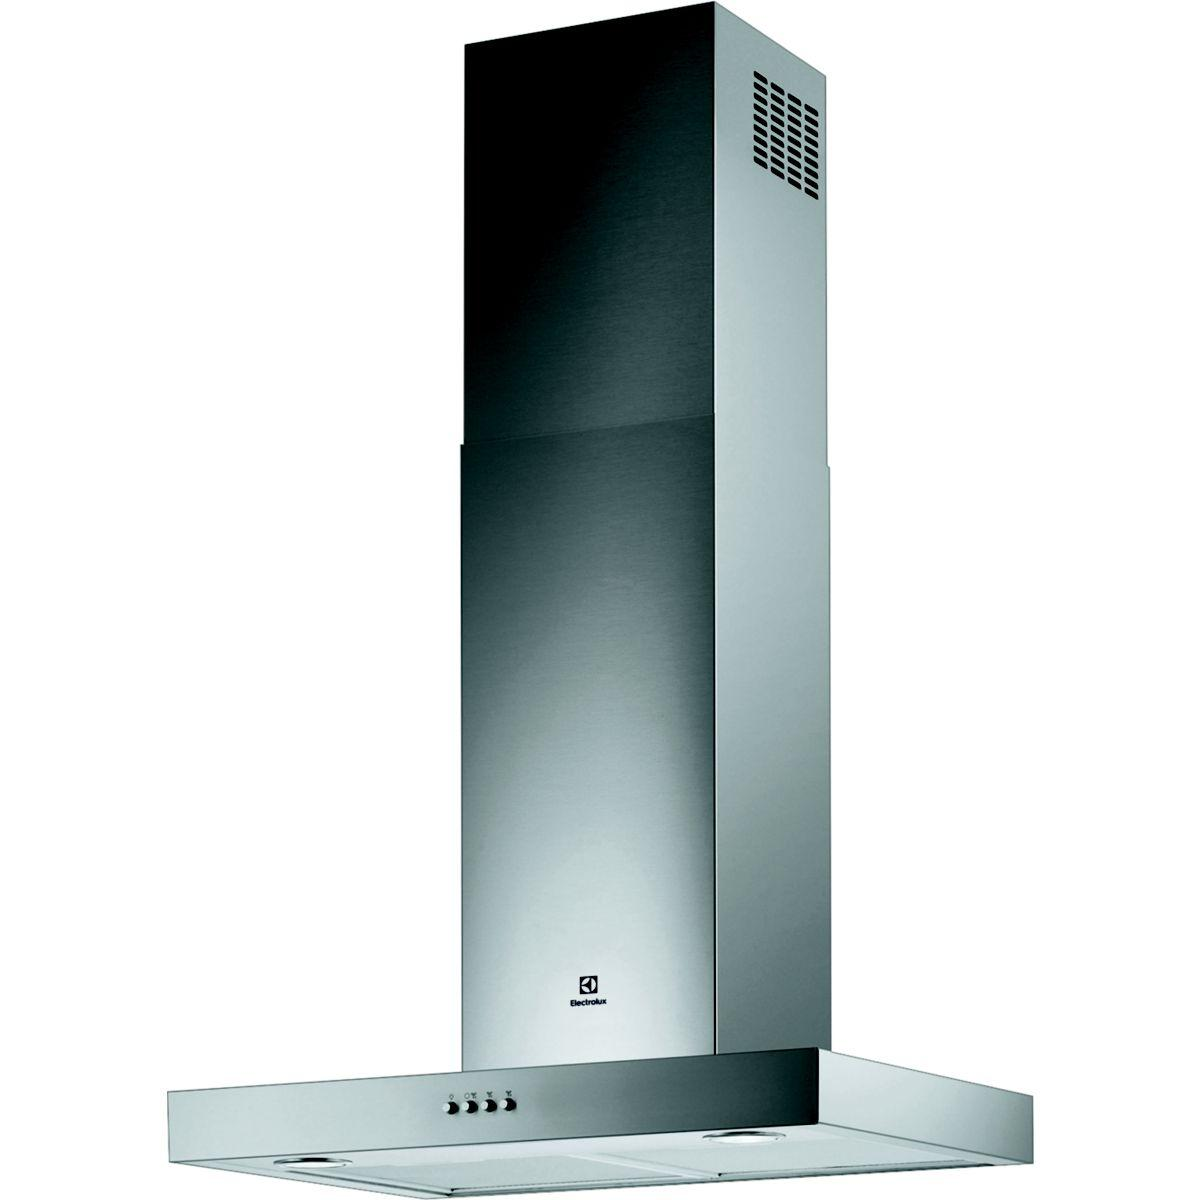 Lectrom nager electrolux efc90462ox hotte box 90cm inox for Hotte decorative murale 90 cm electrolux efc90400x inox